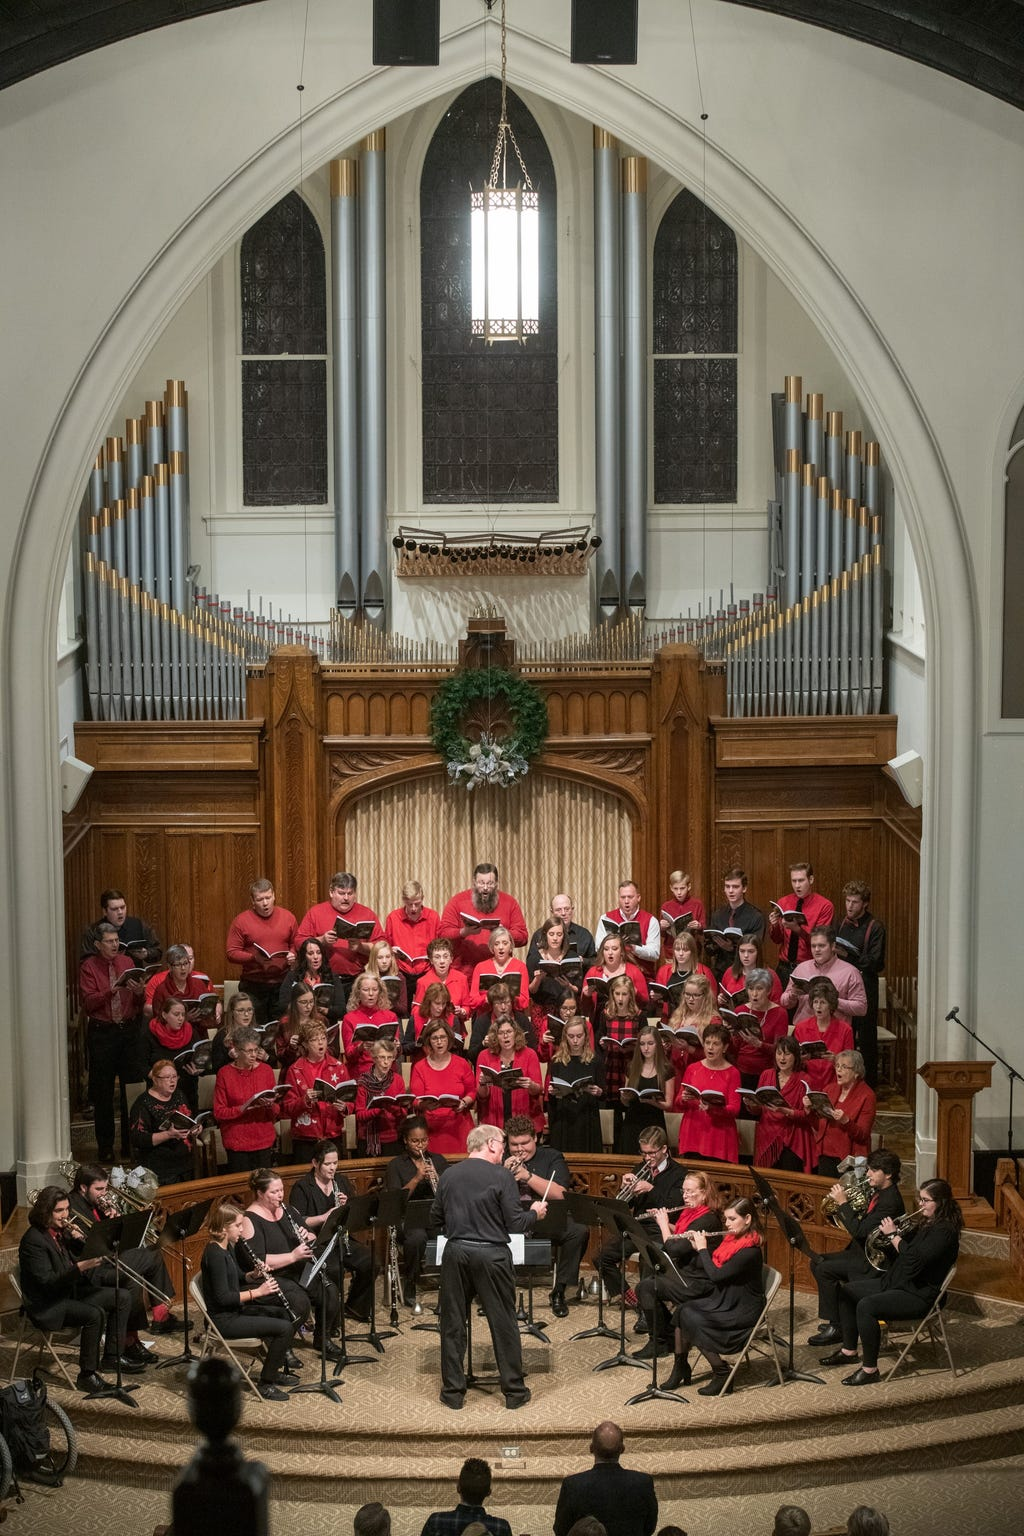 Alan Chamness conducts the choir and orchestra at Henderson's First Baptist Church during the adult choir's Christmas Cantata Sunday, Dec. 17, 2018.